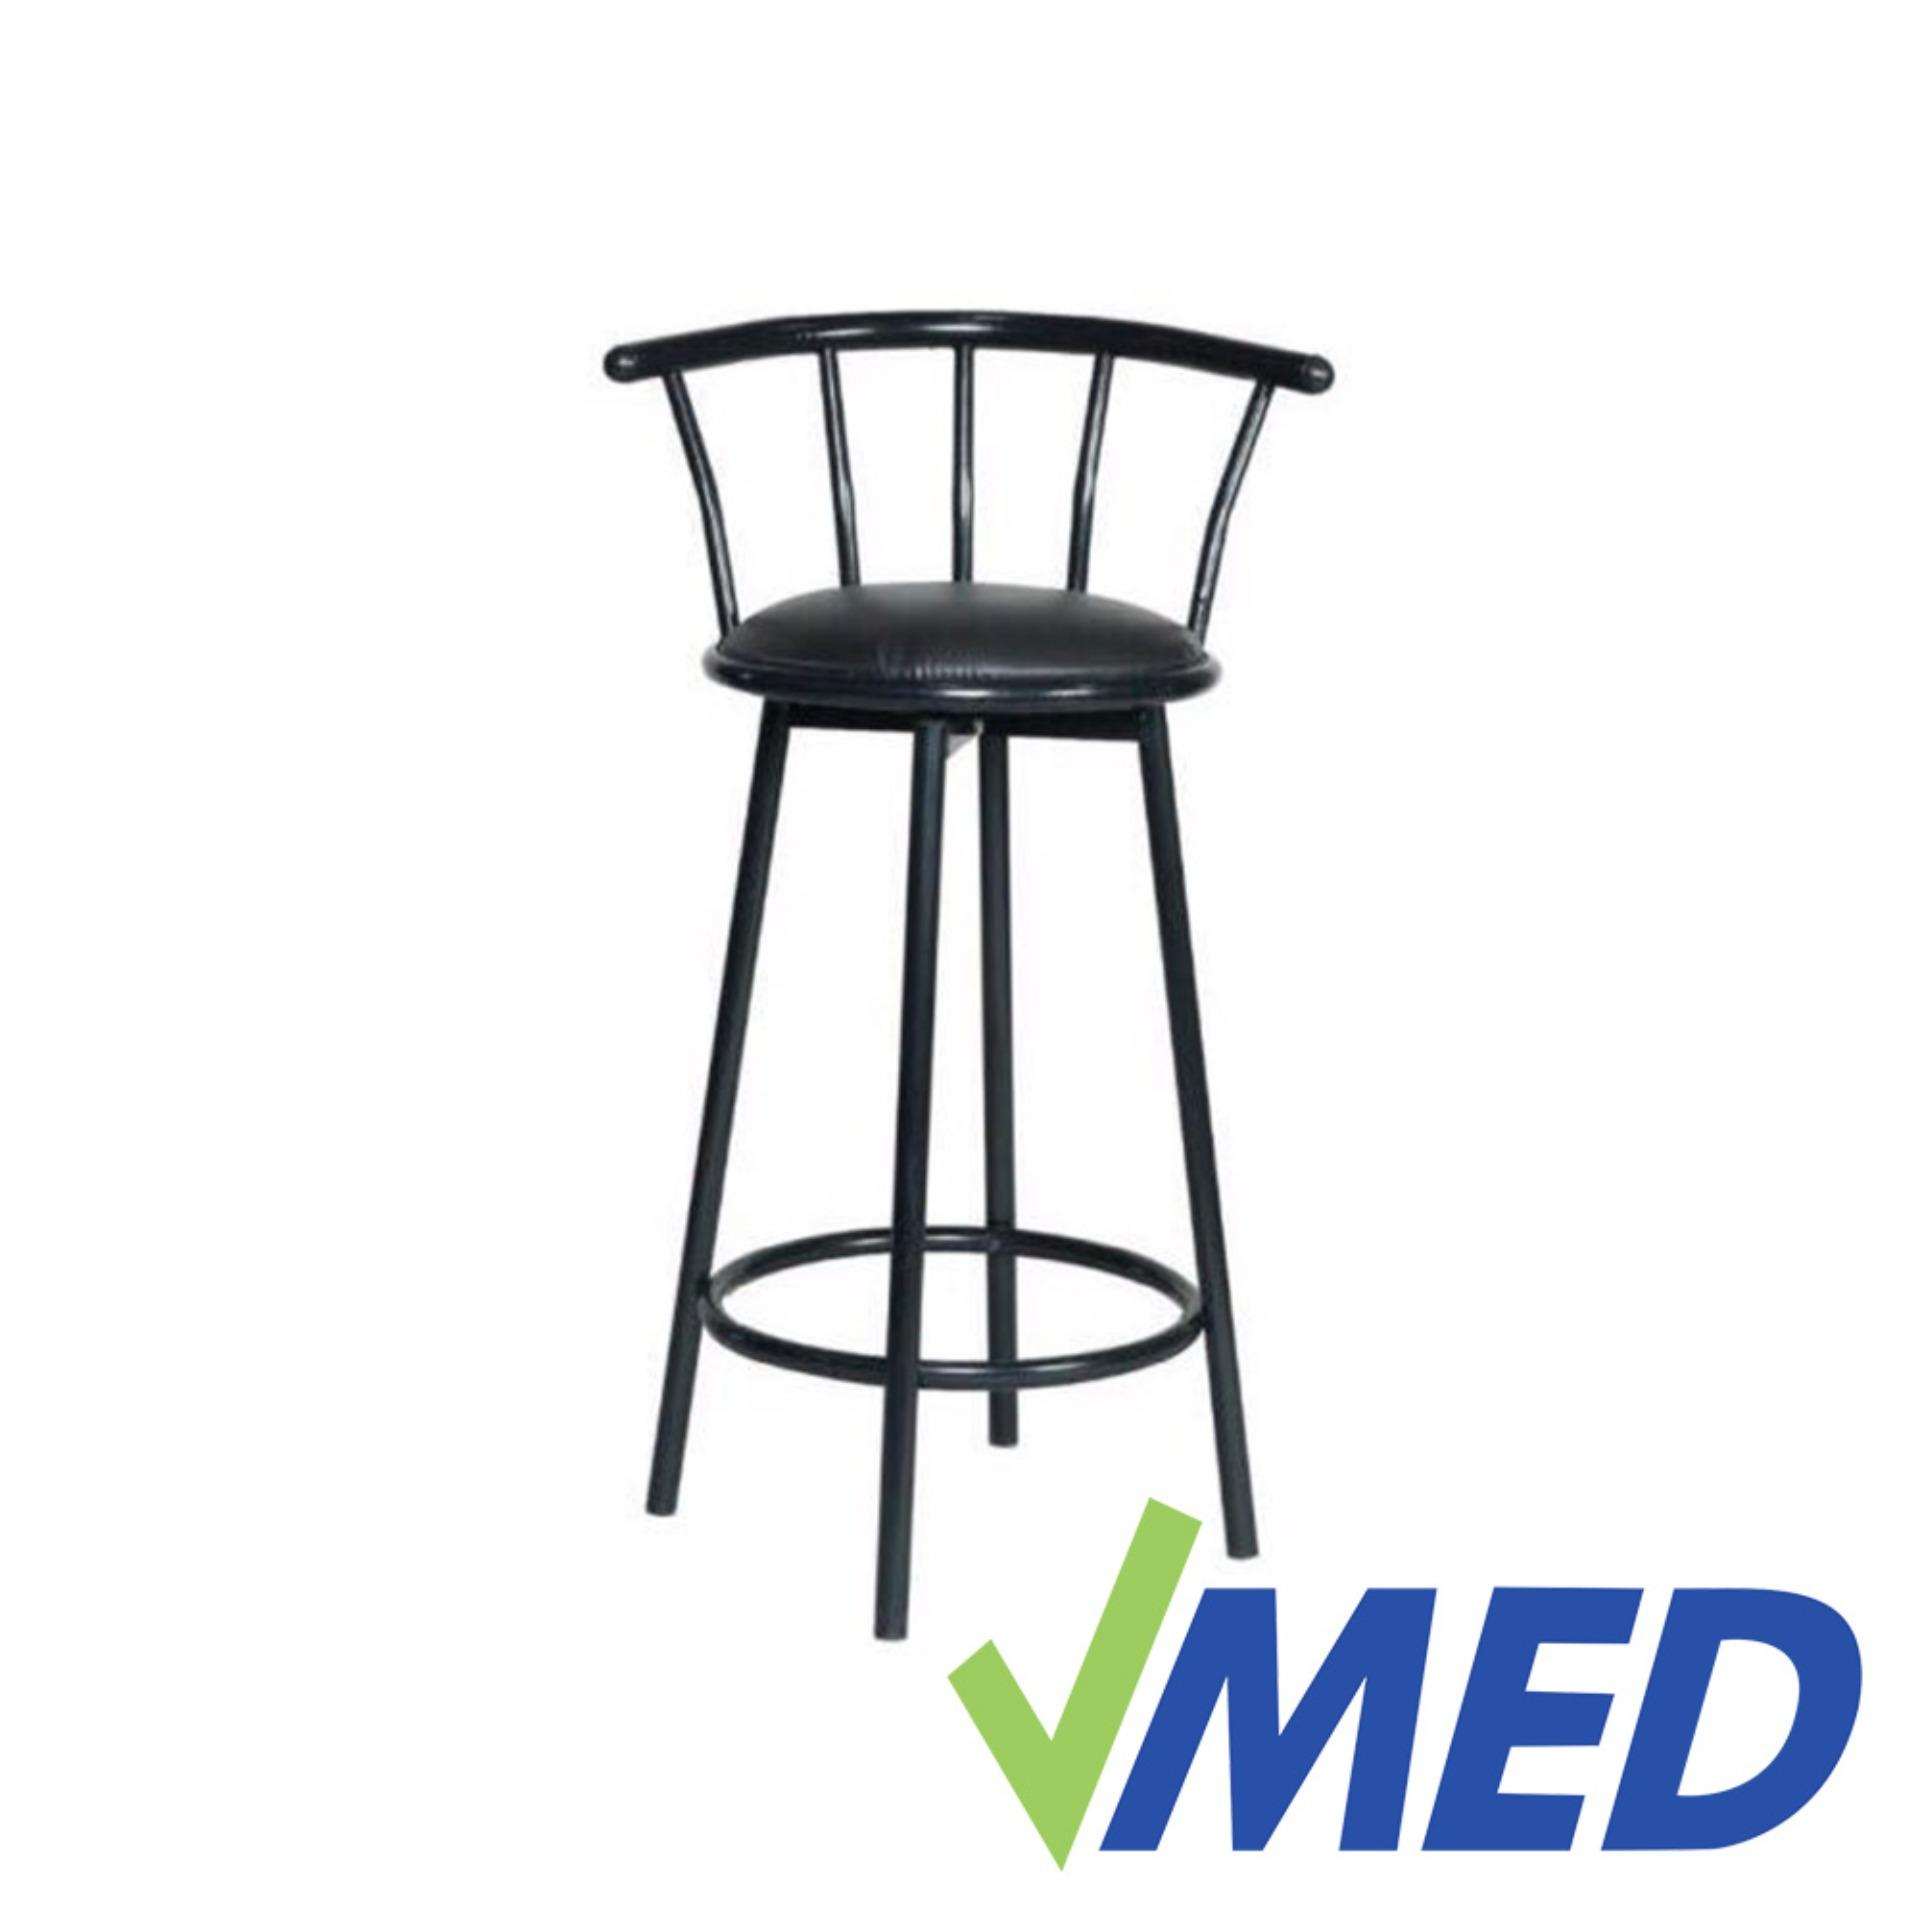 Bar Stool For Sale – Bar Stool Chairs Prices, Brands & Review In Within Chill Swivel Chairs With Metal Base (Image 6 of 25)